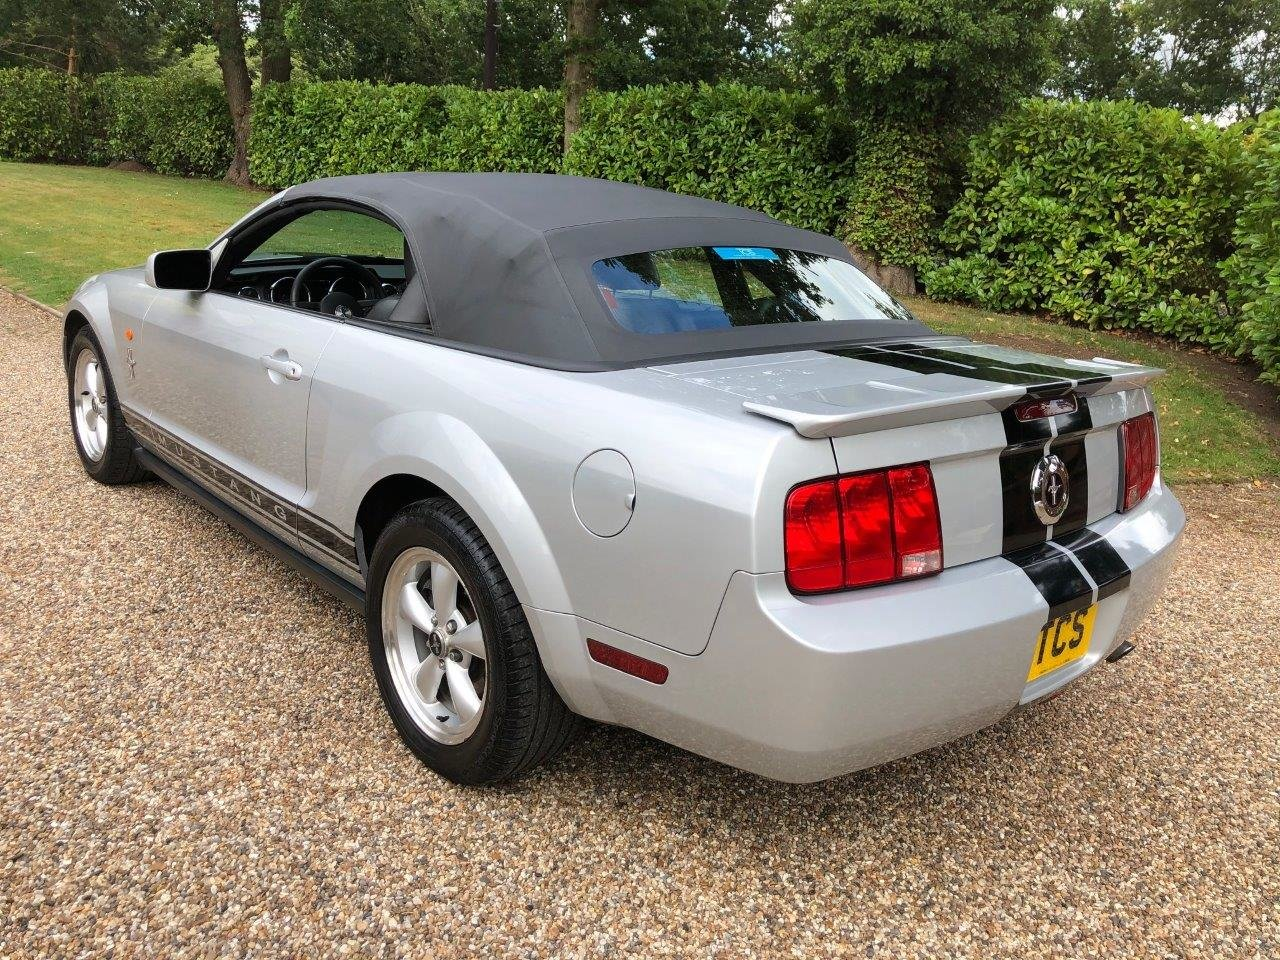 2009 Ford Mustang Premium Convertible 4.0L Automatic For Sale (picture 2 of 6)